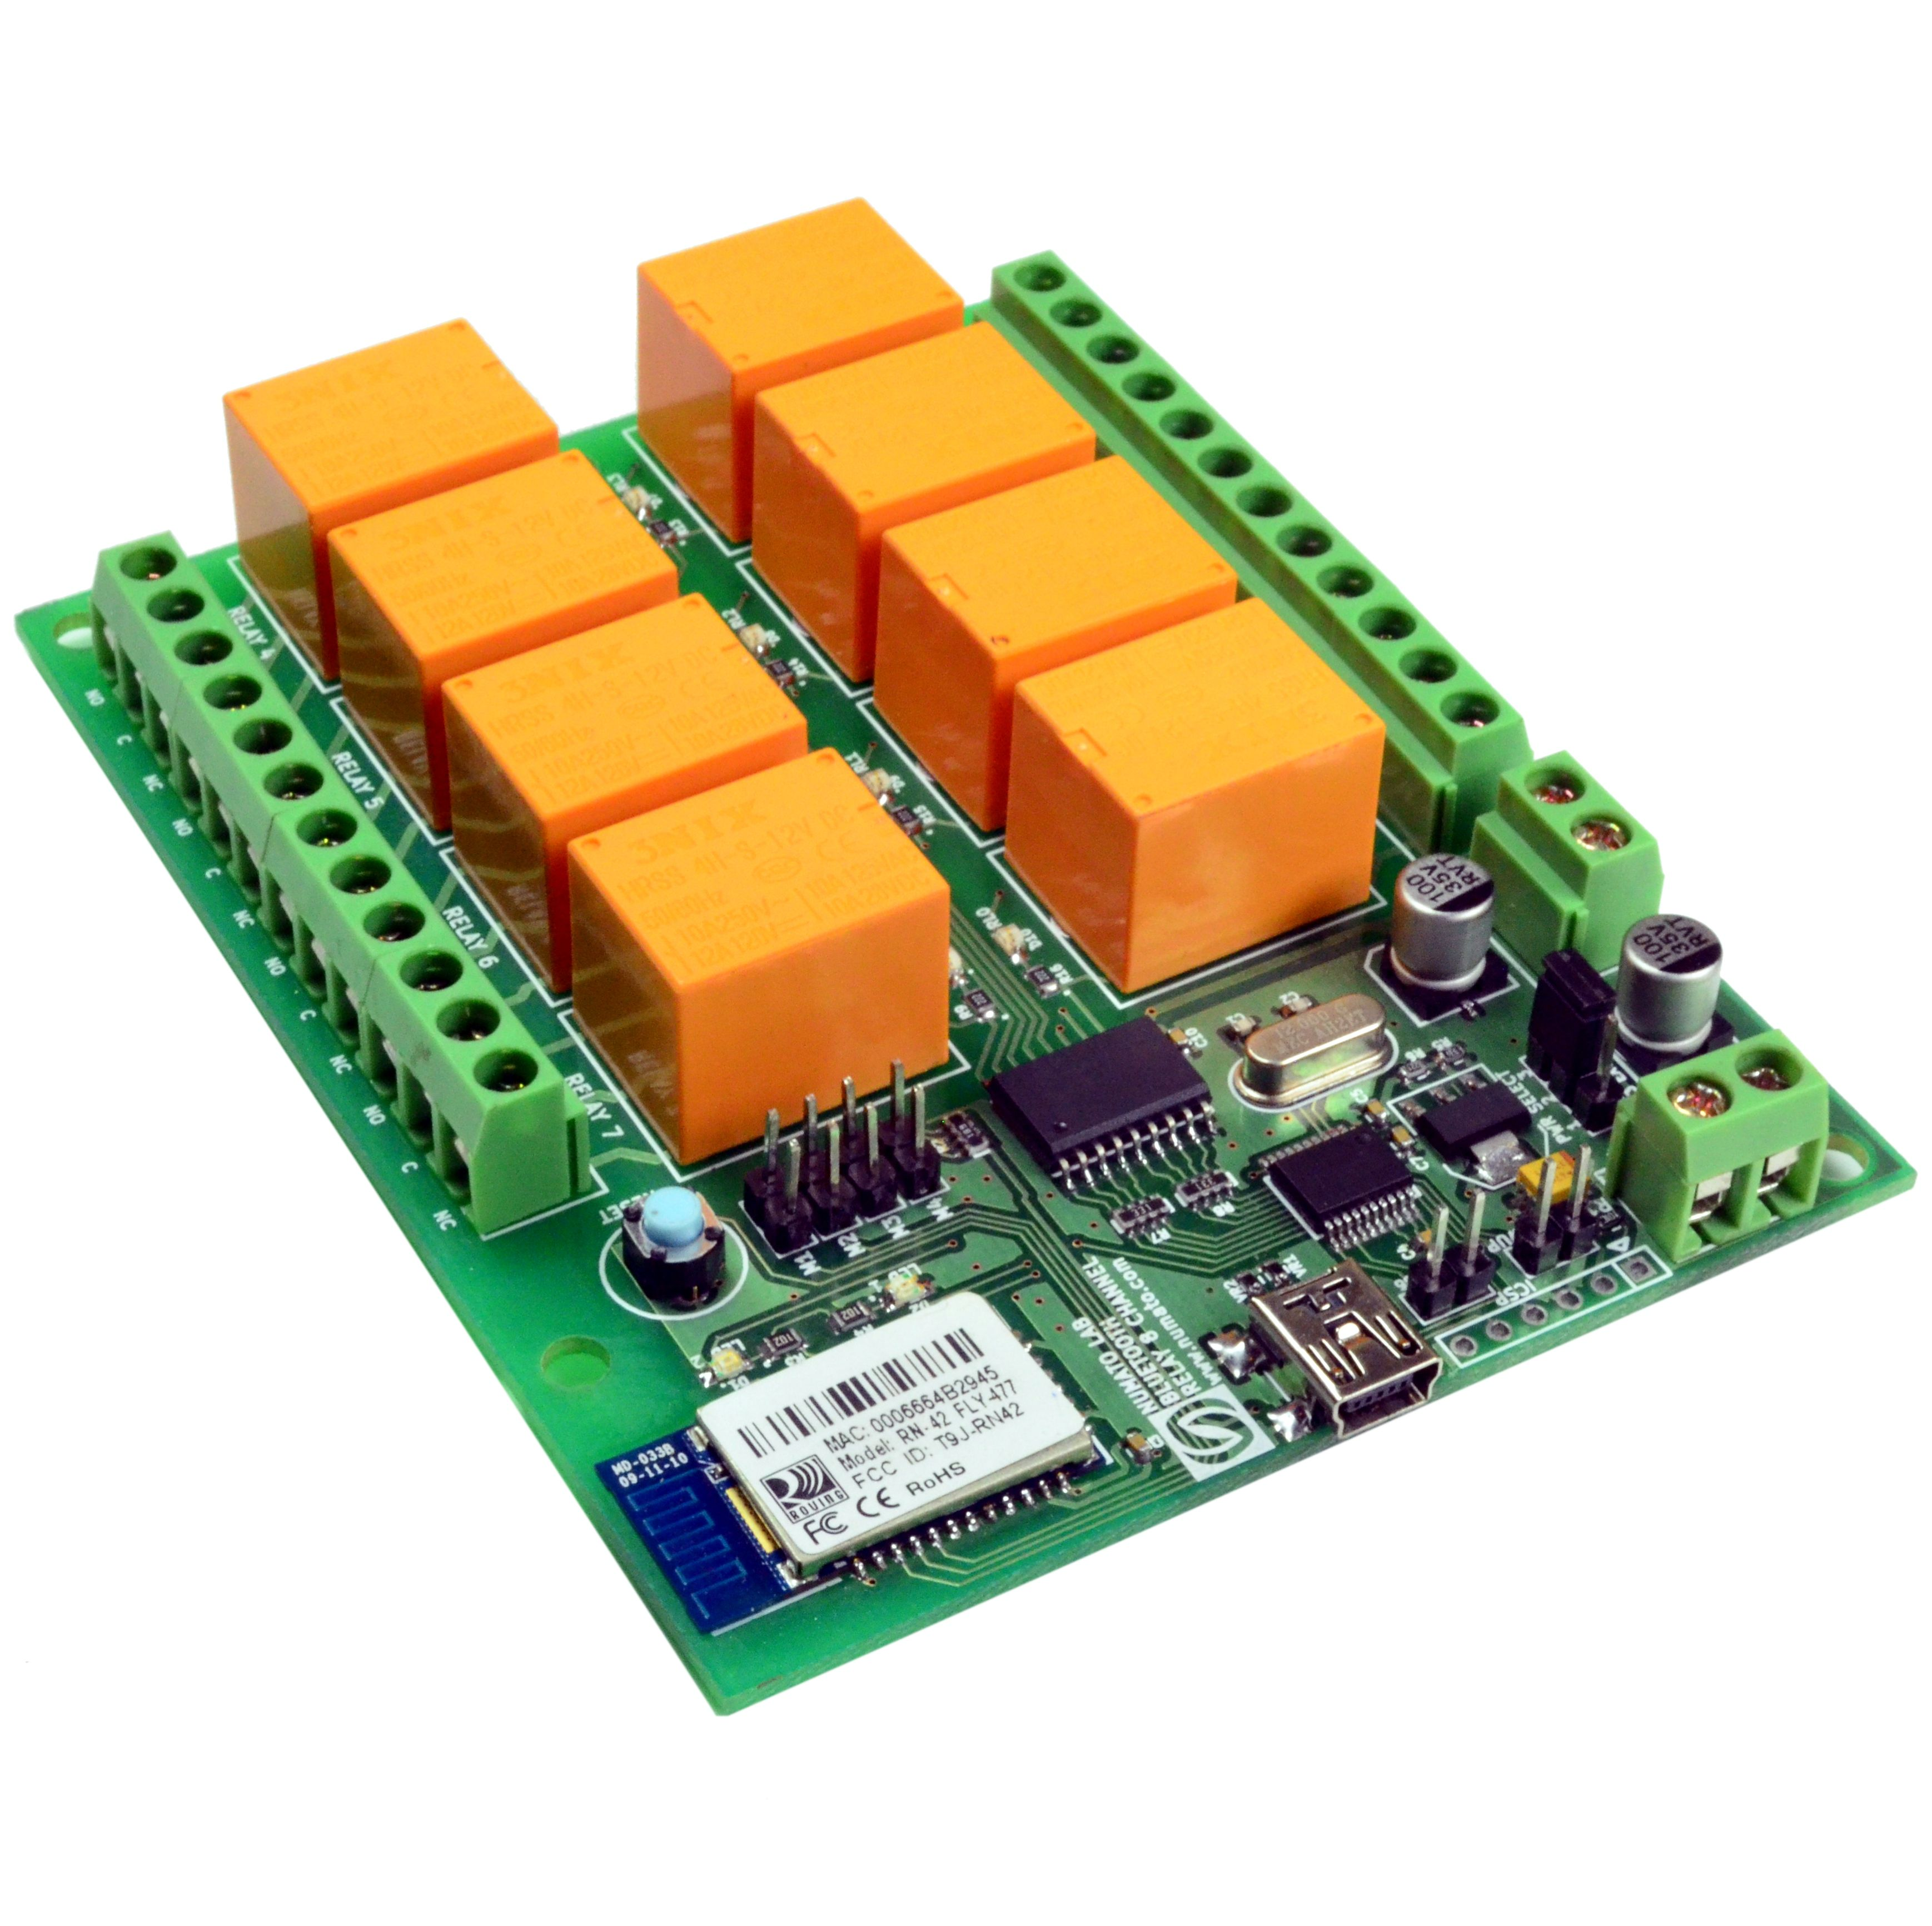 8 Channel Bluetooth relay module  Control things from a